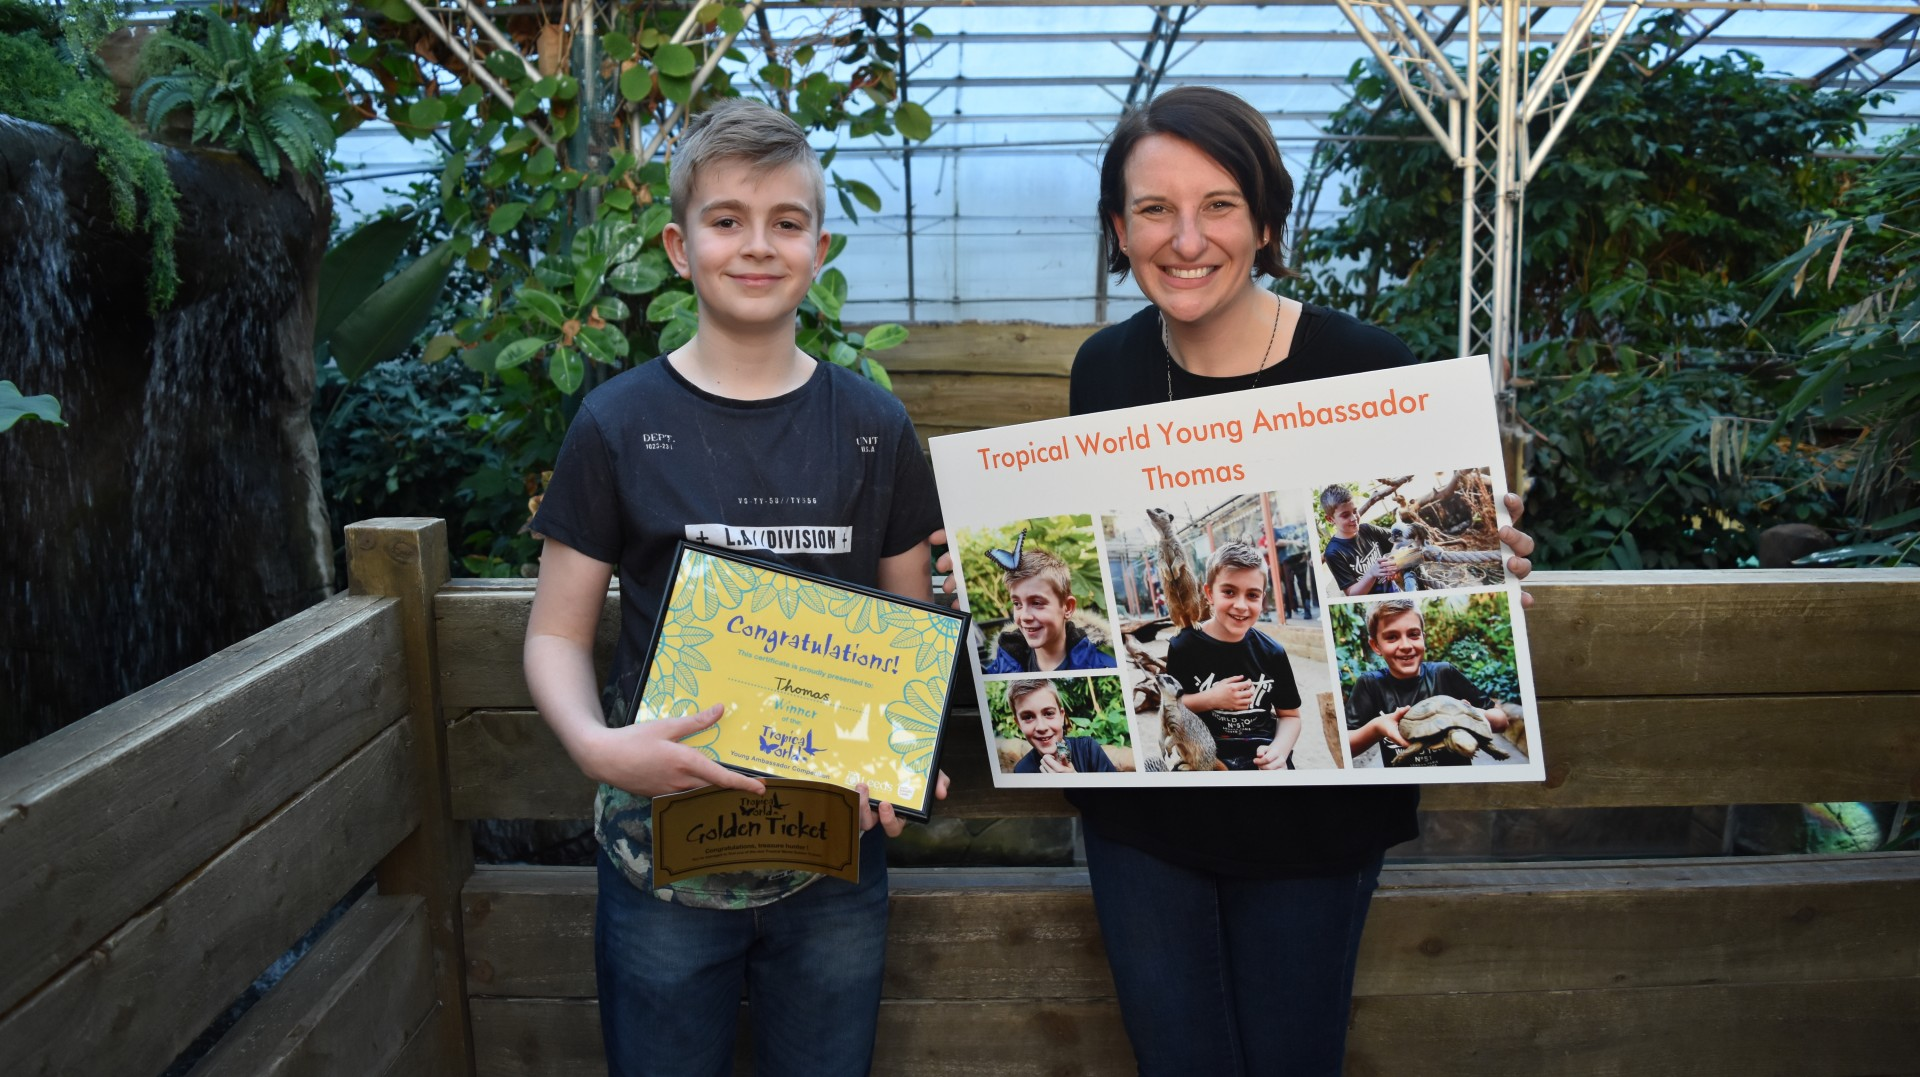 New Tropical World Young Ambassador Thomas Paddy with Cllr Lucinda Yeadon